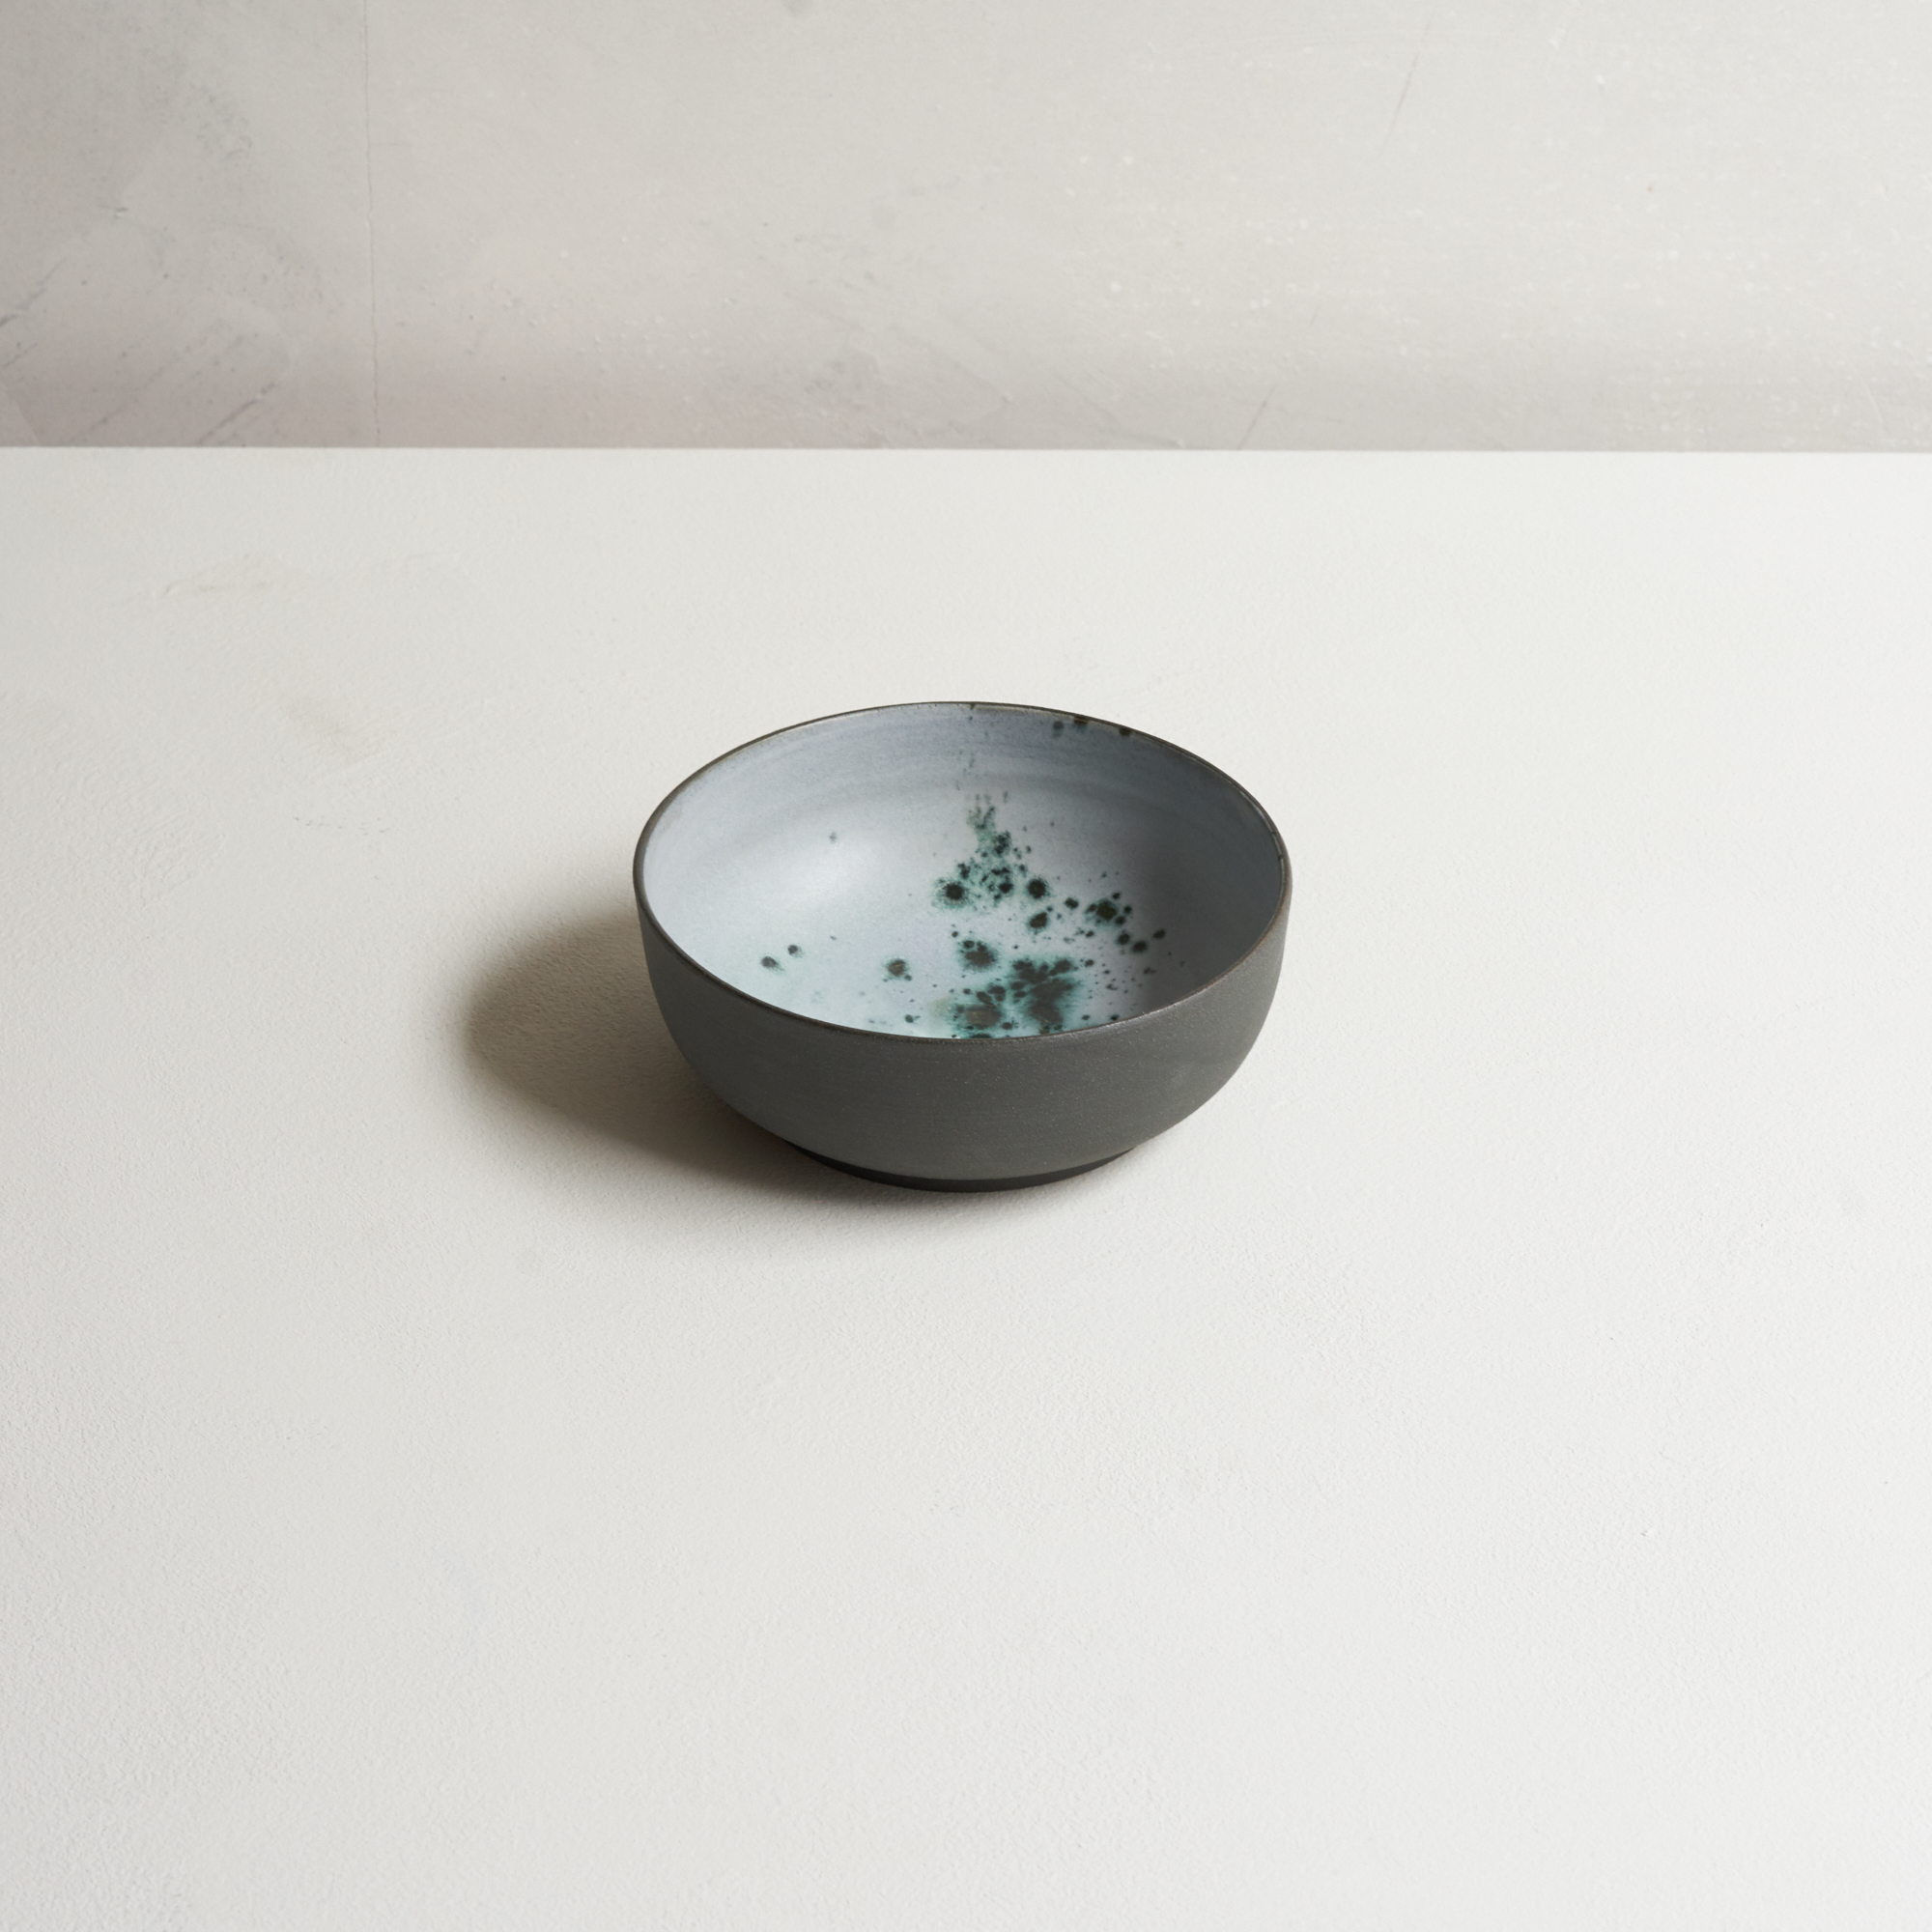 Anette Krogstad Small Bowl